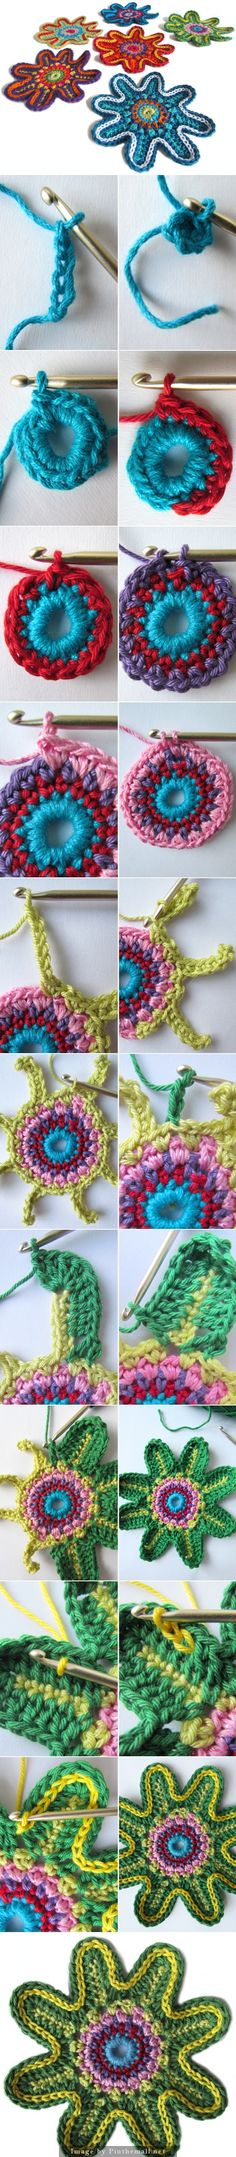 "#Crochet #Tutorial for these wonderful flower motifs from a Dutch blog that has a translation. Click on the picture to get the exact directions."" #KnittingGuru http://www.pinterest.com/KnittingGuru"